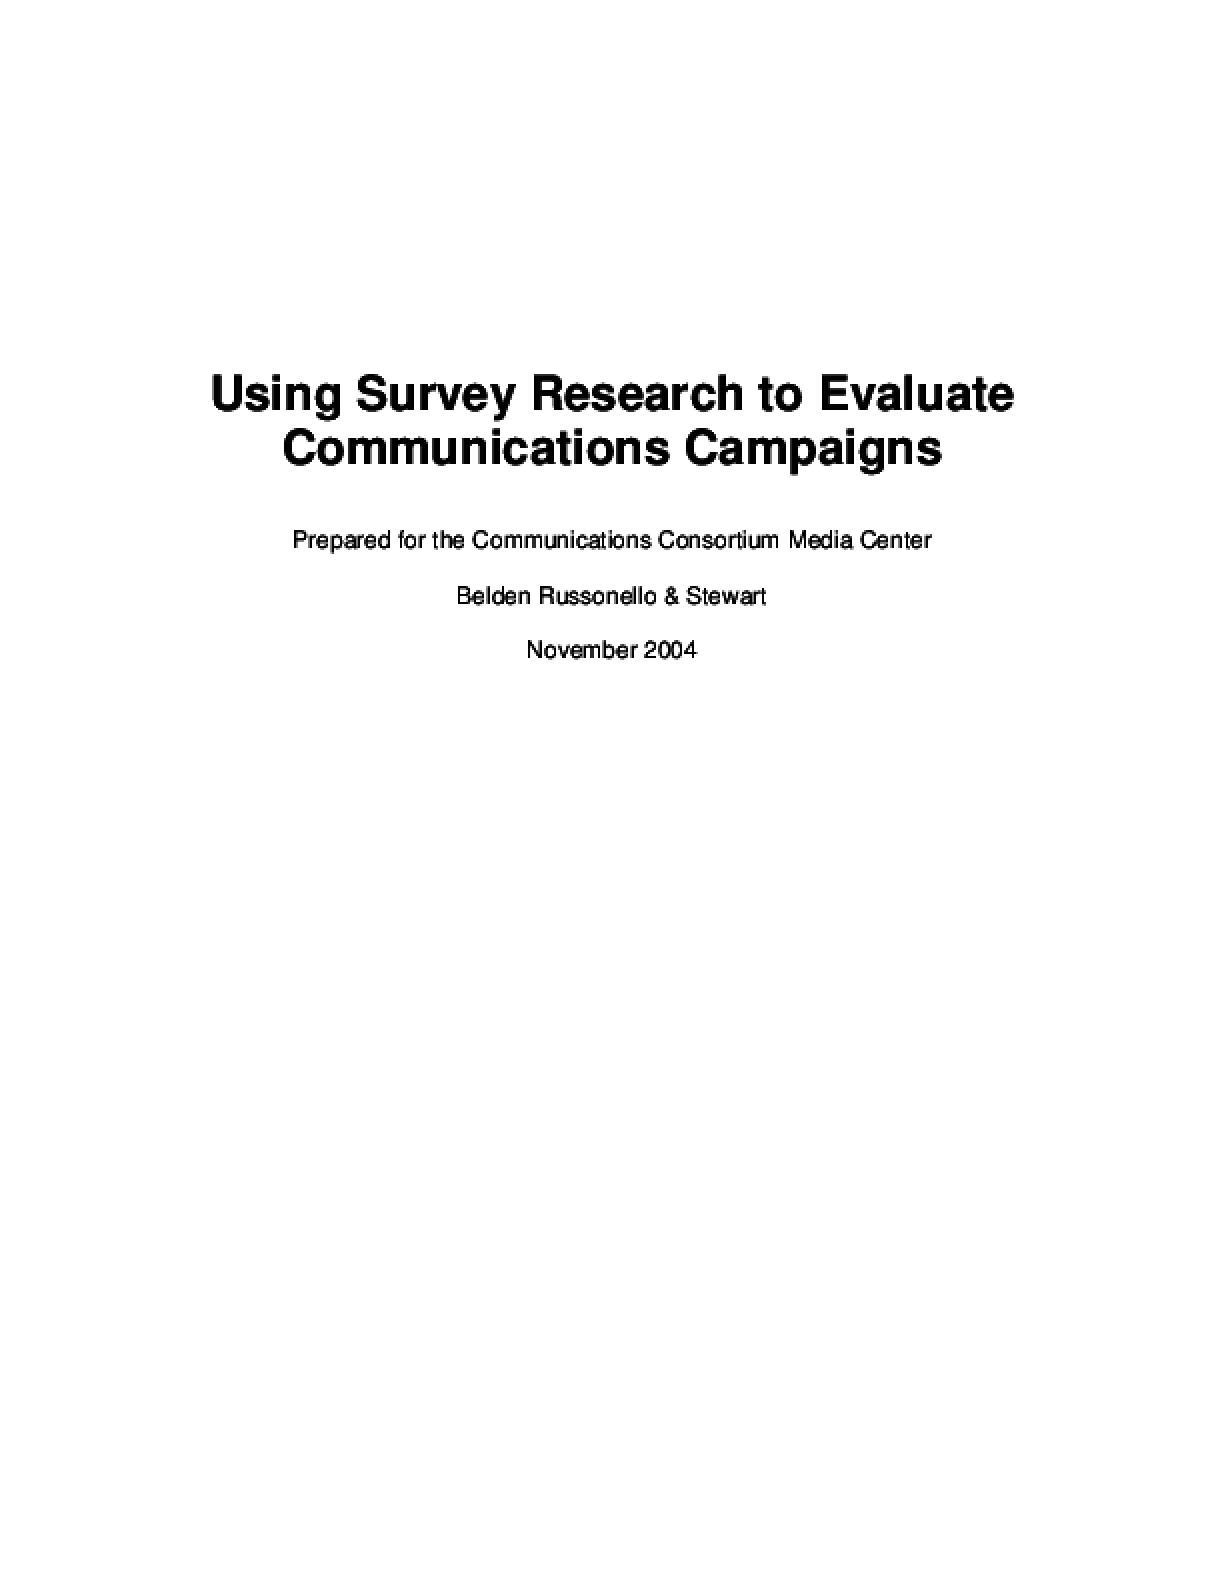 Using Survey Research to Evaluate Communications Campaigns